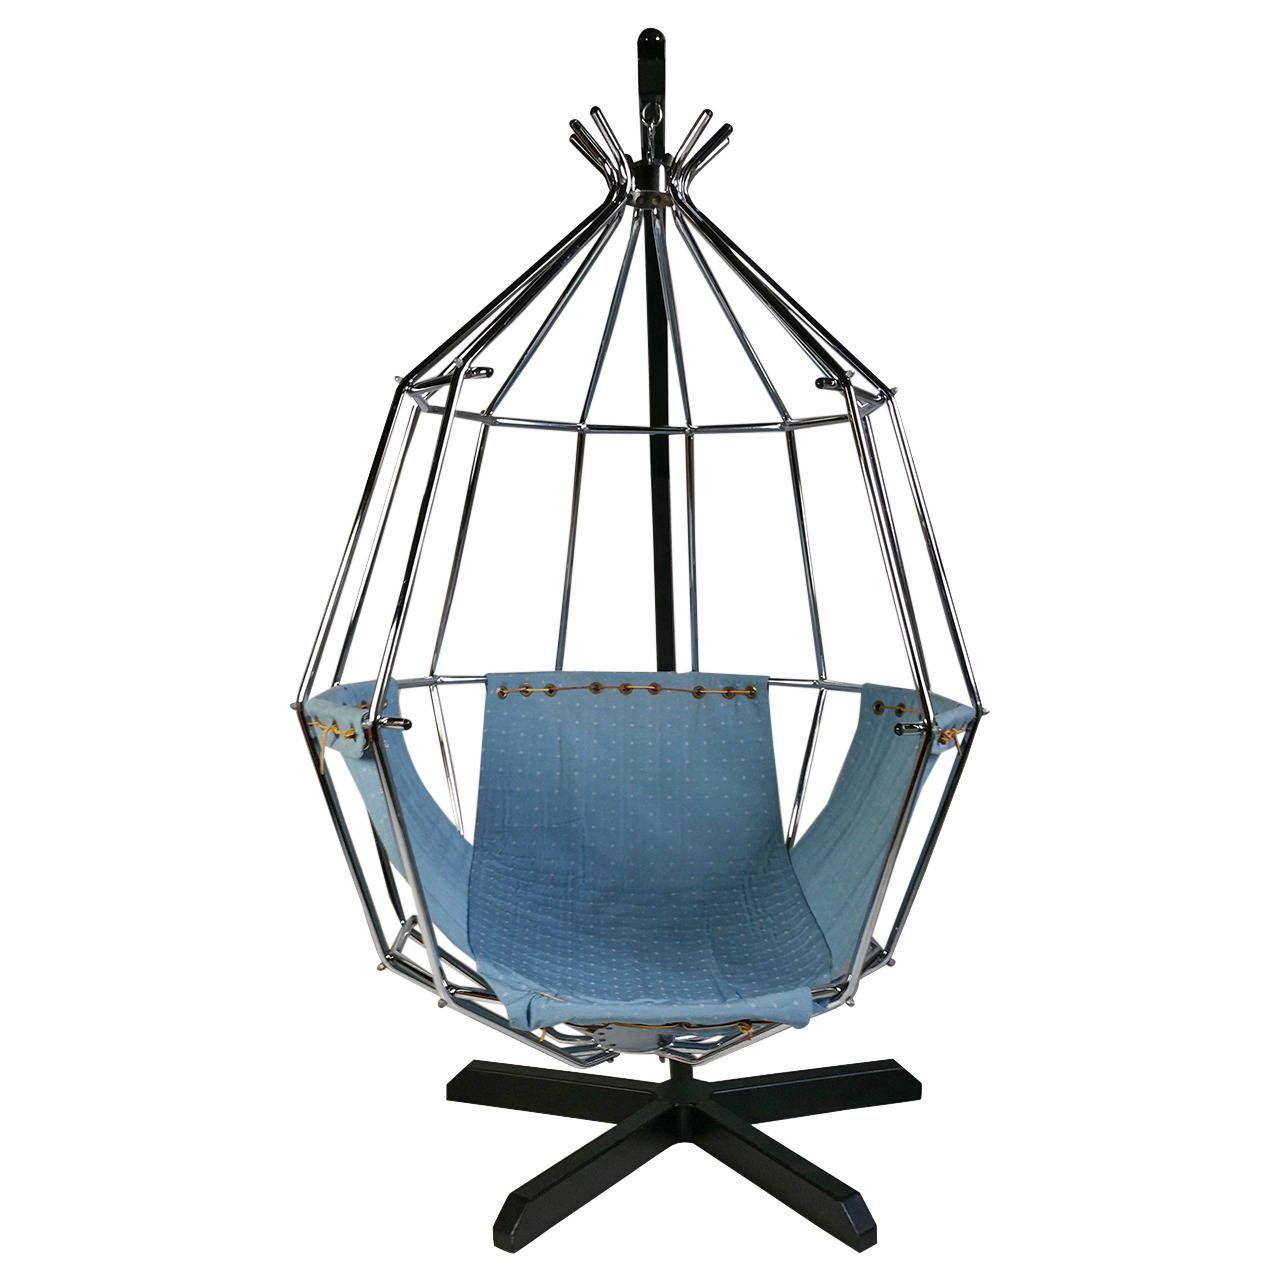 Exceptional Ib Arberg Hanging Birdcage Chair Or Parrot Chair, Circa 1970 | 1stdibs.com